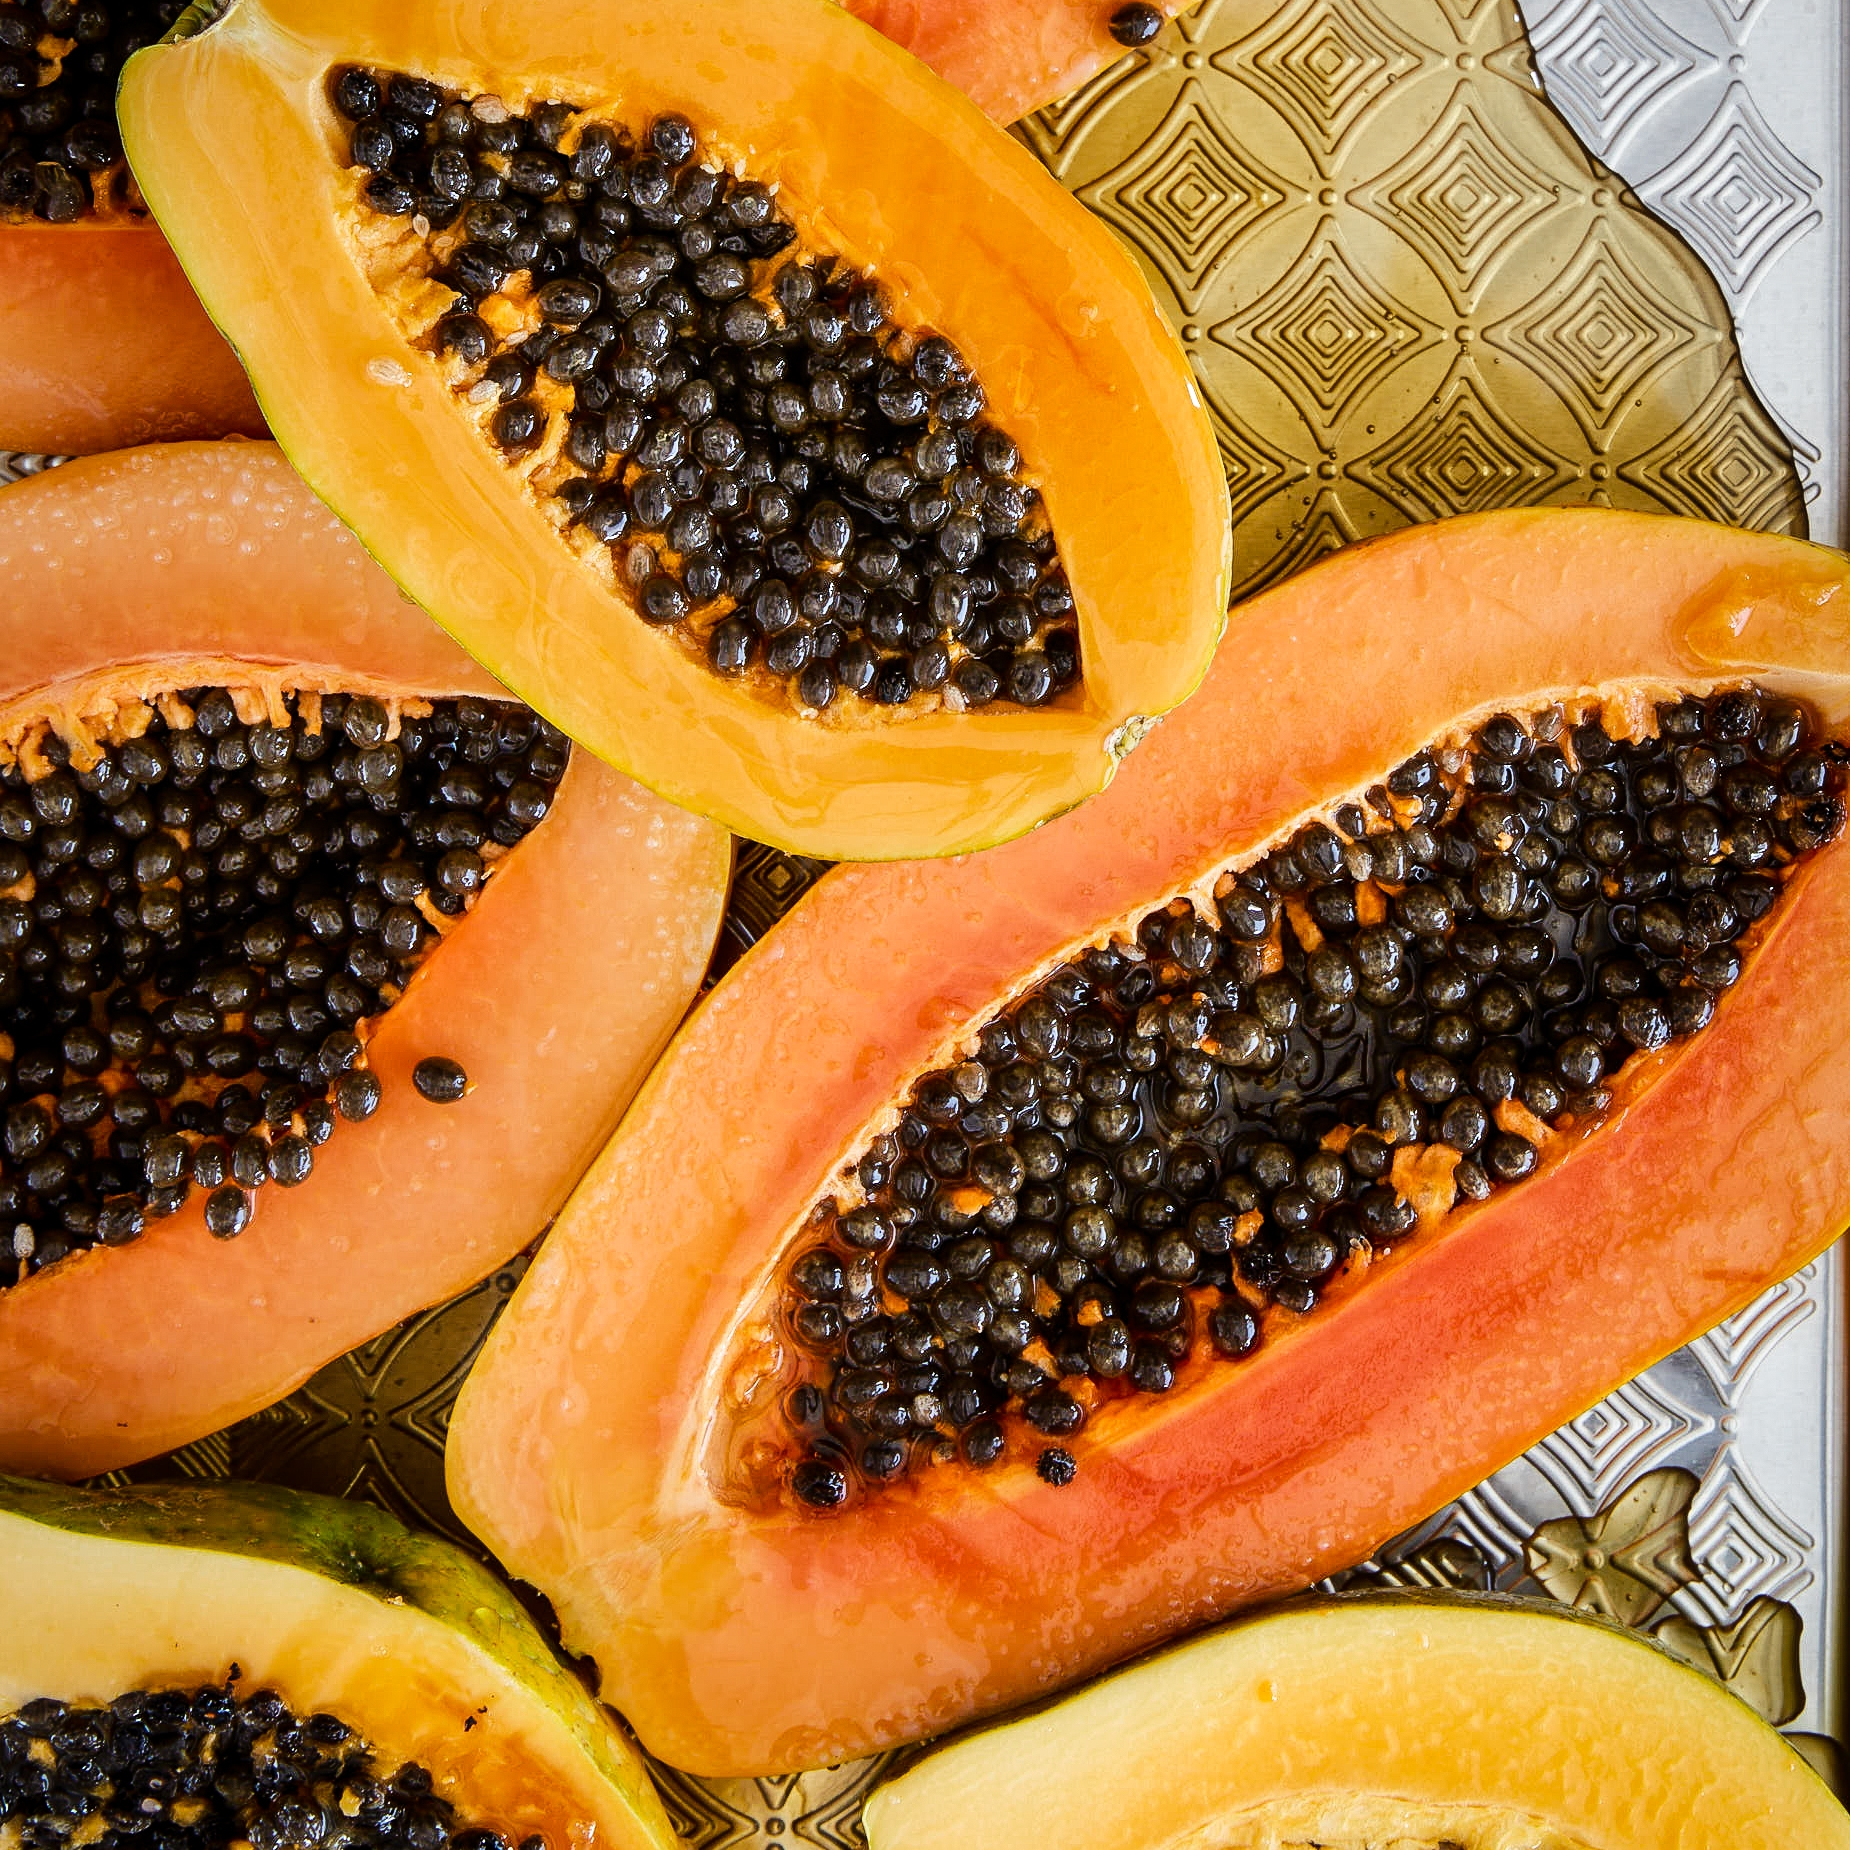 Cuba_Cookbook_Papaya_0766.jpg